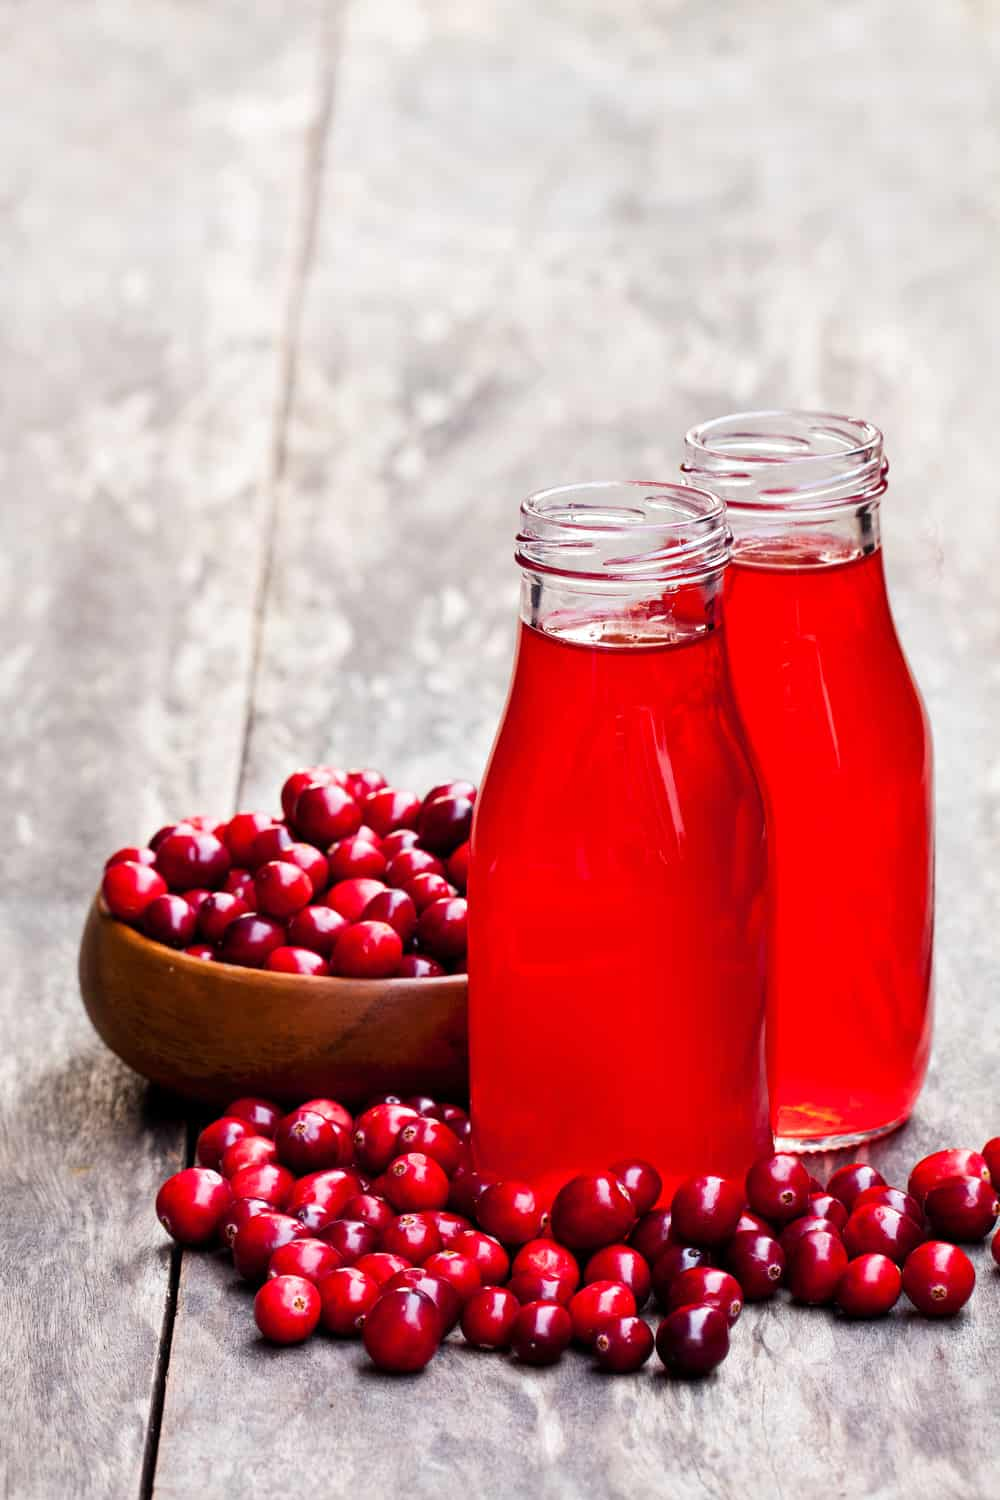 How long does Cranberry Juice last